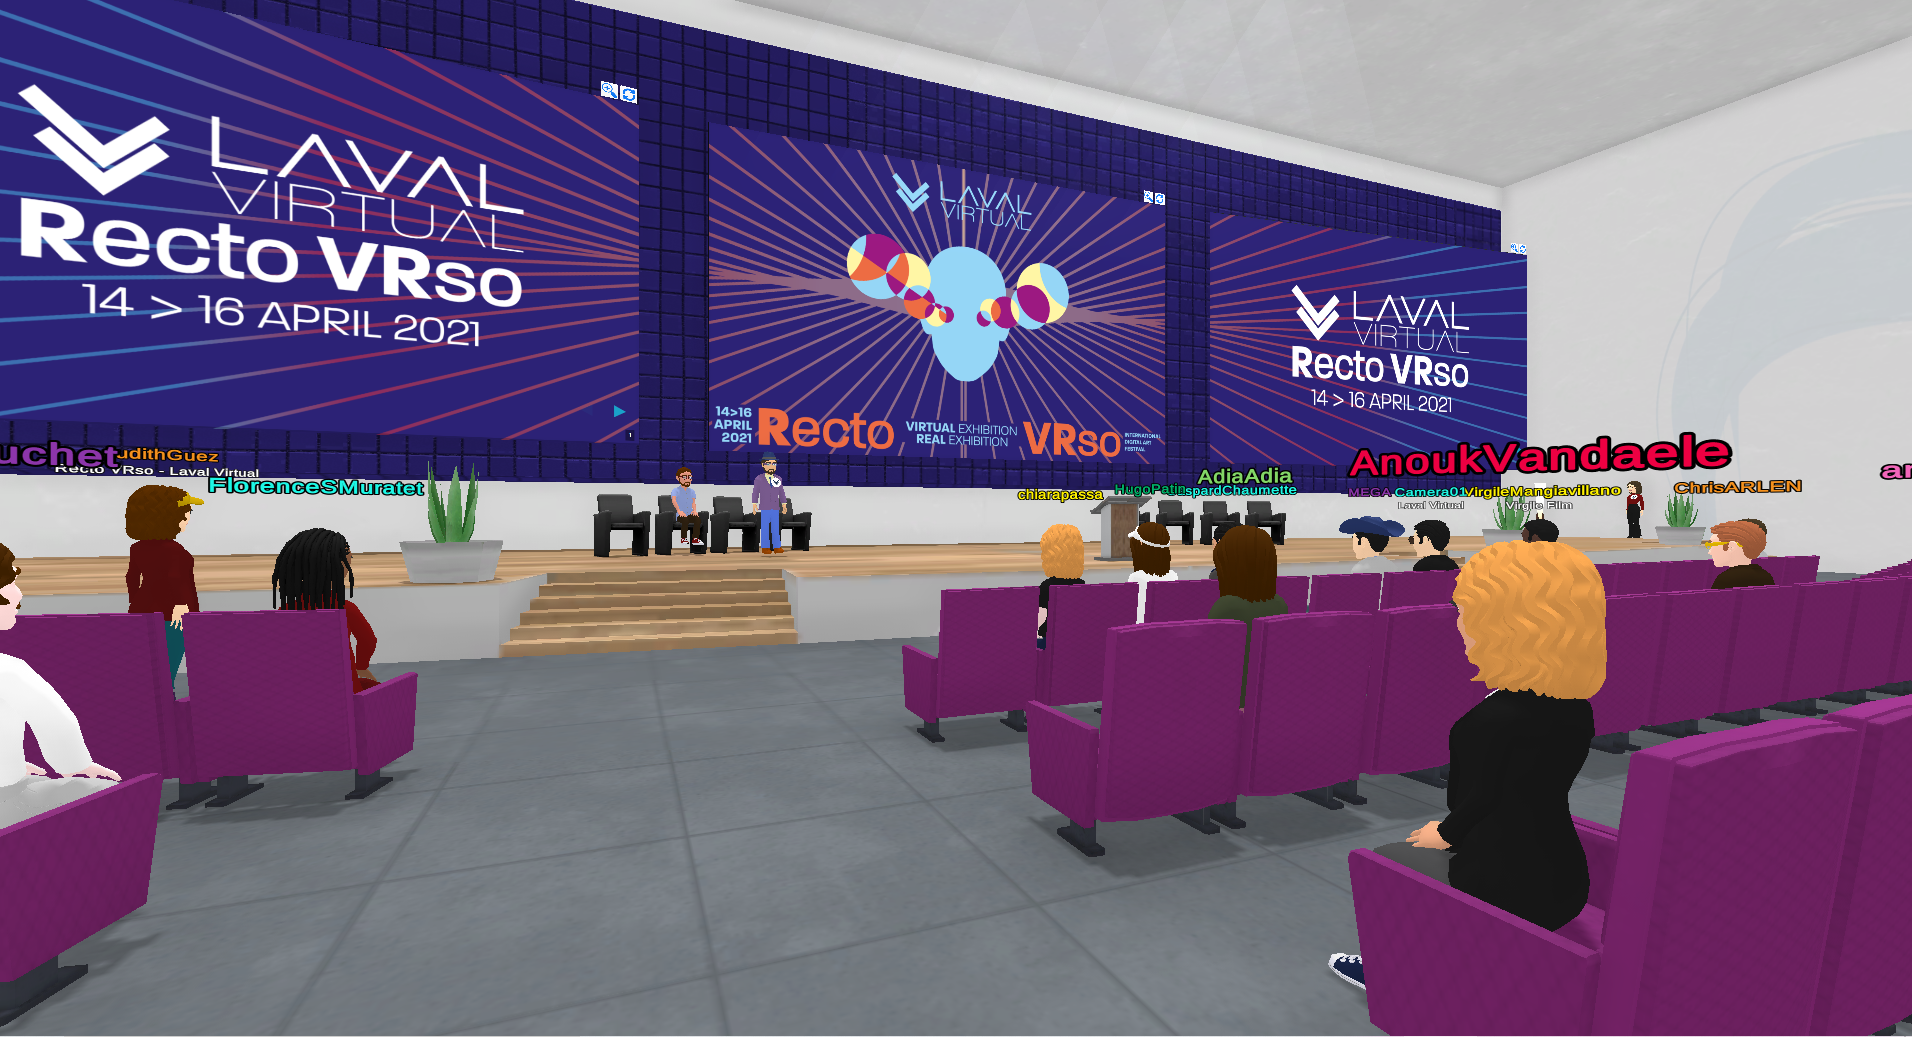 Look back at the 4th edition of the digital art festival Recto VRso by Laval Virtual